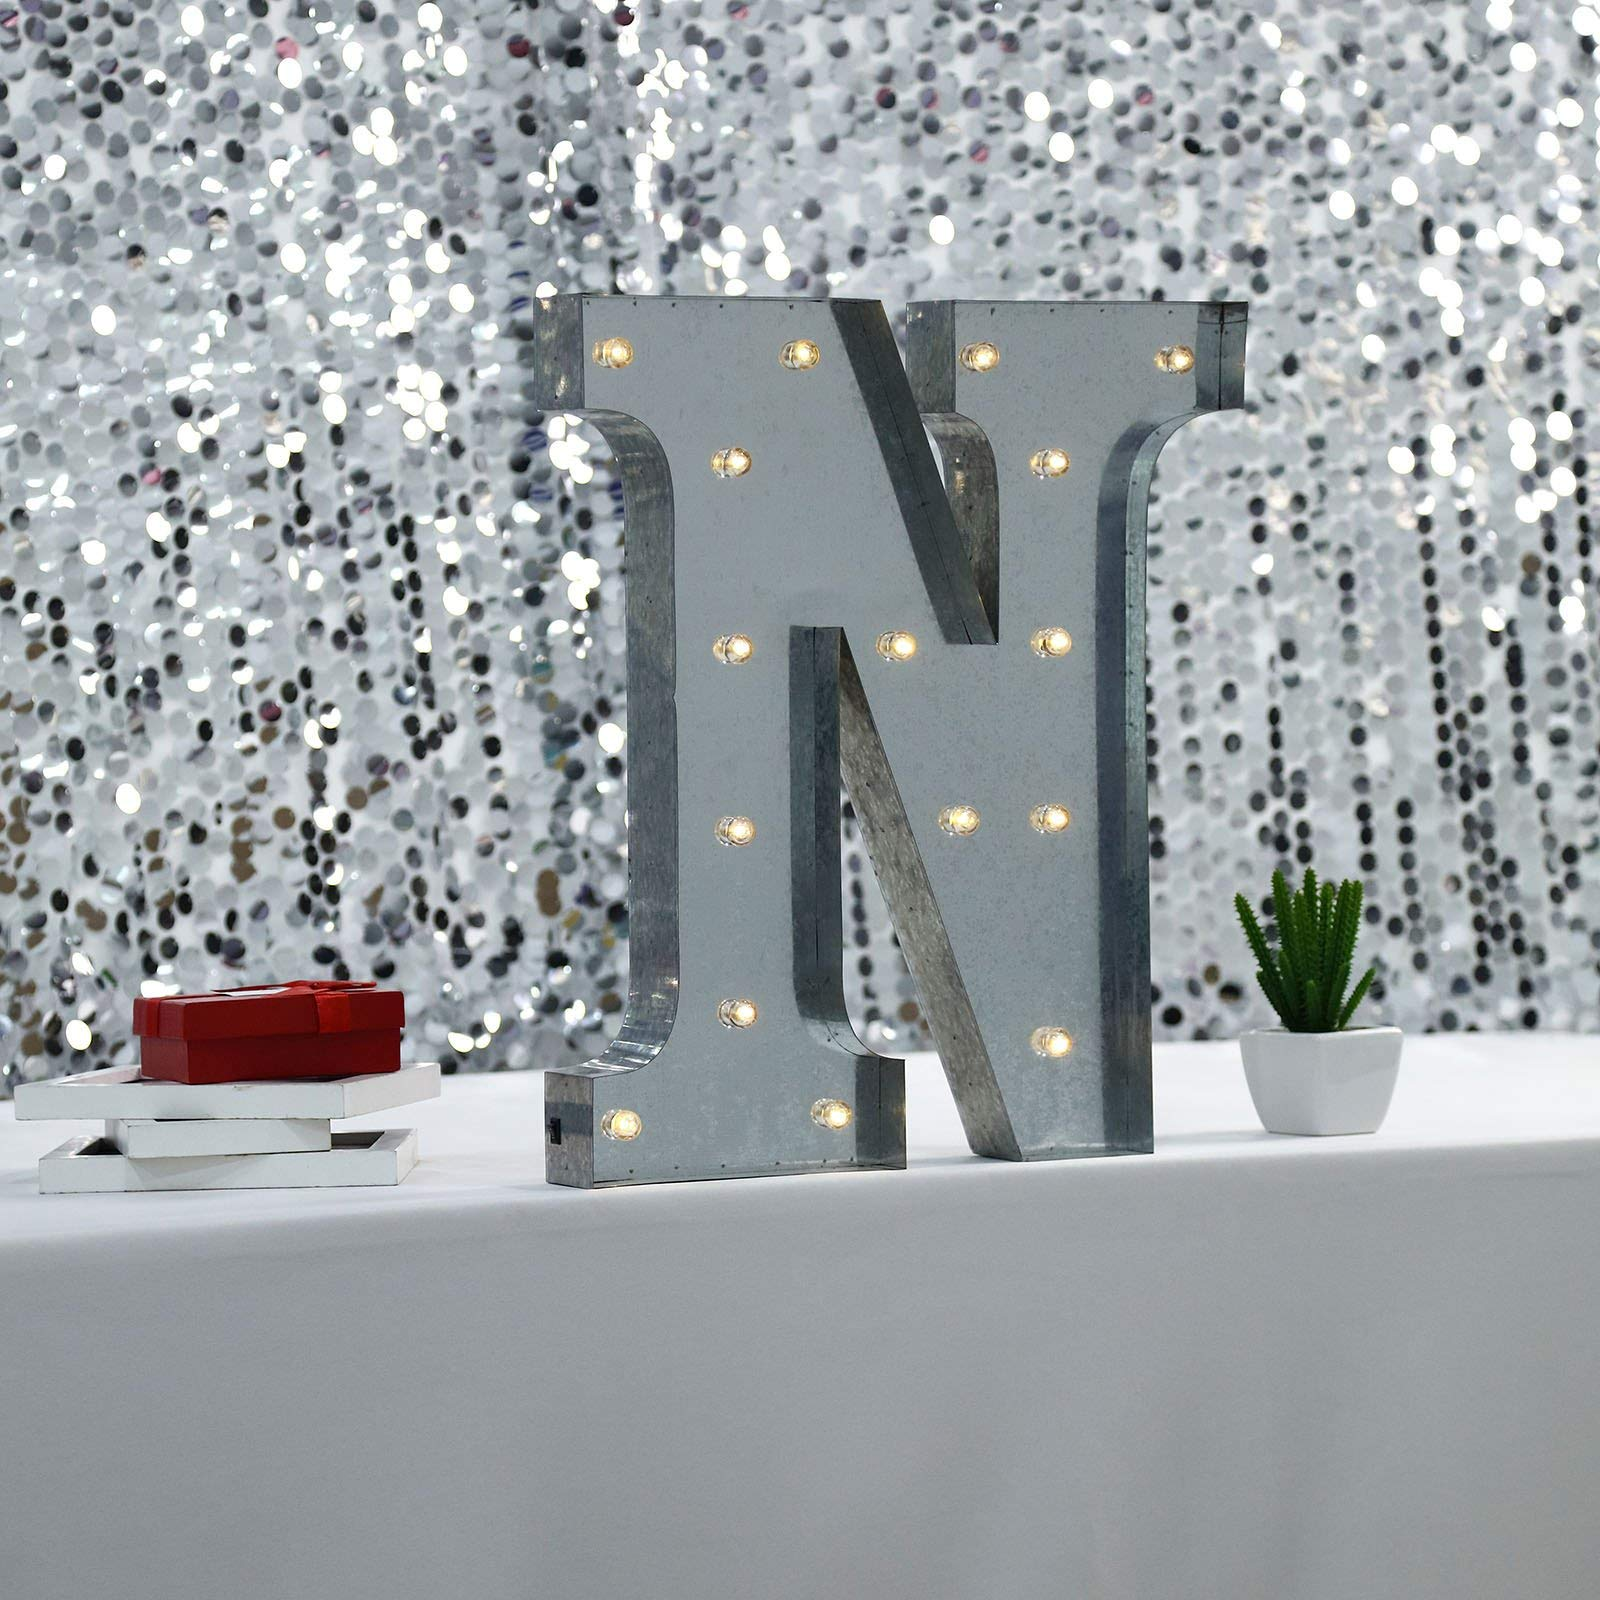 Tableclothsfactory 2 FT   Vintage Metal Marquee Letter Lights Cordless with 16 Warm White LED - N by Tableclothsfactory